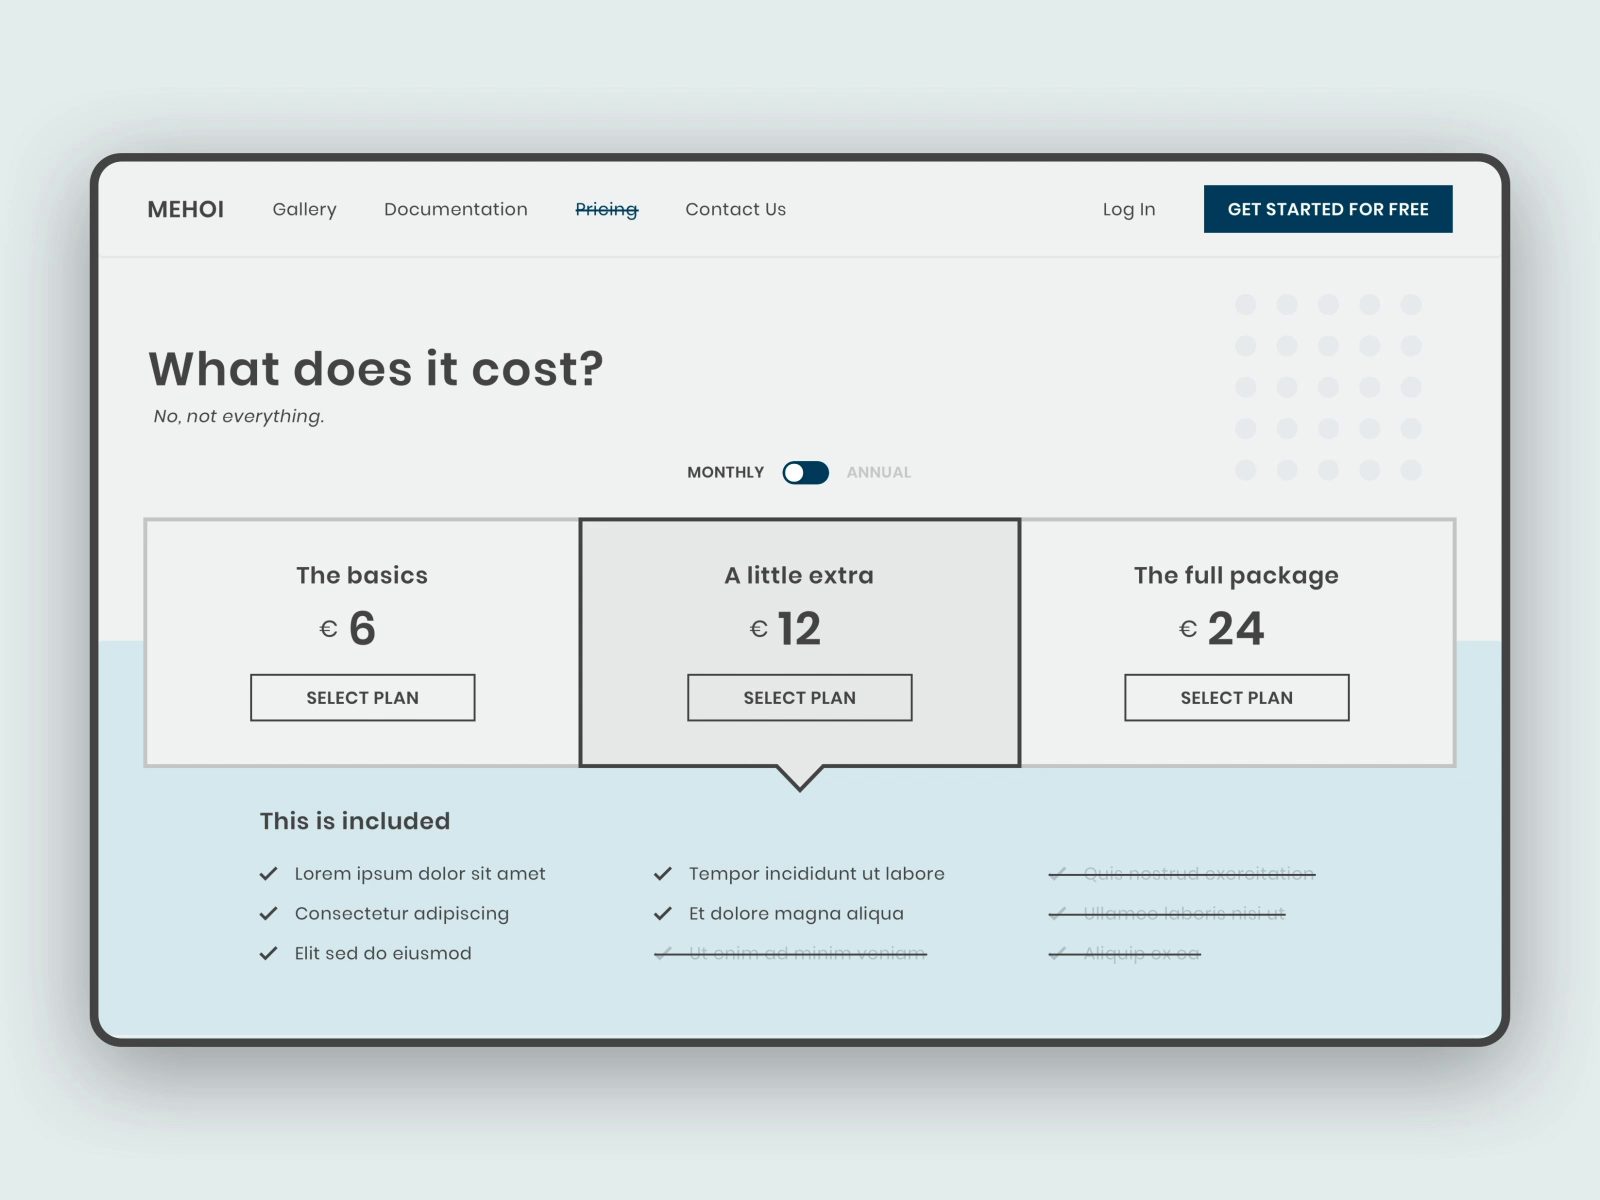 Pricing by jeffrey thumann